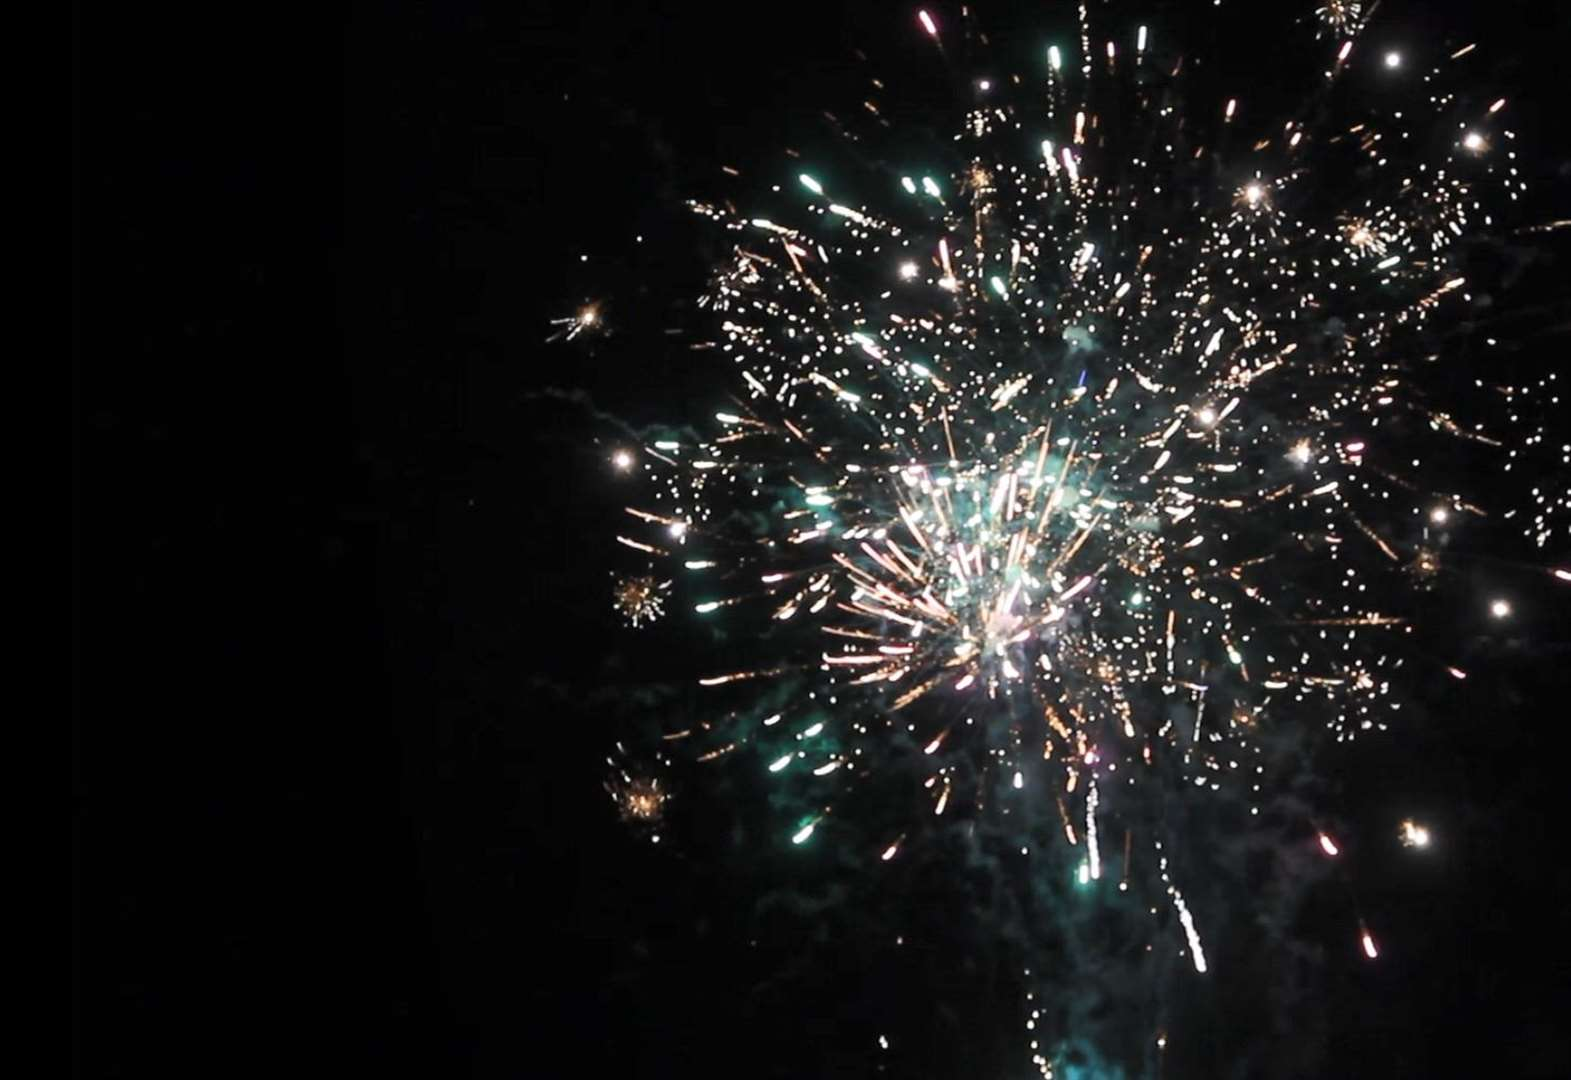 Trading standards officers remove dangerous fireworks from sale in Hertfordshire